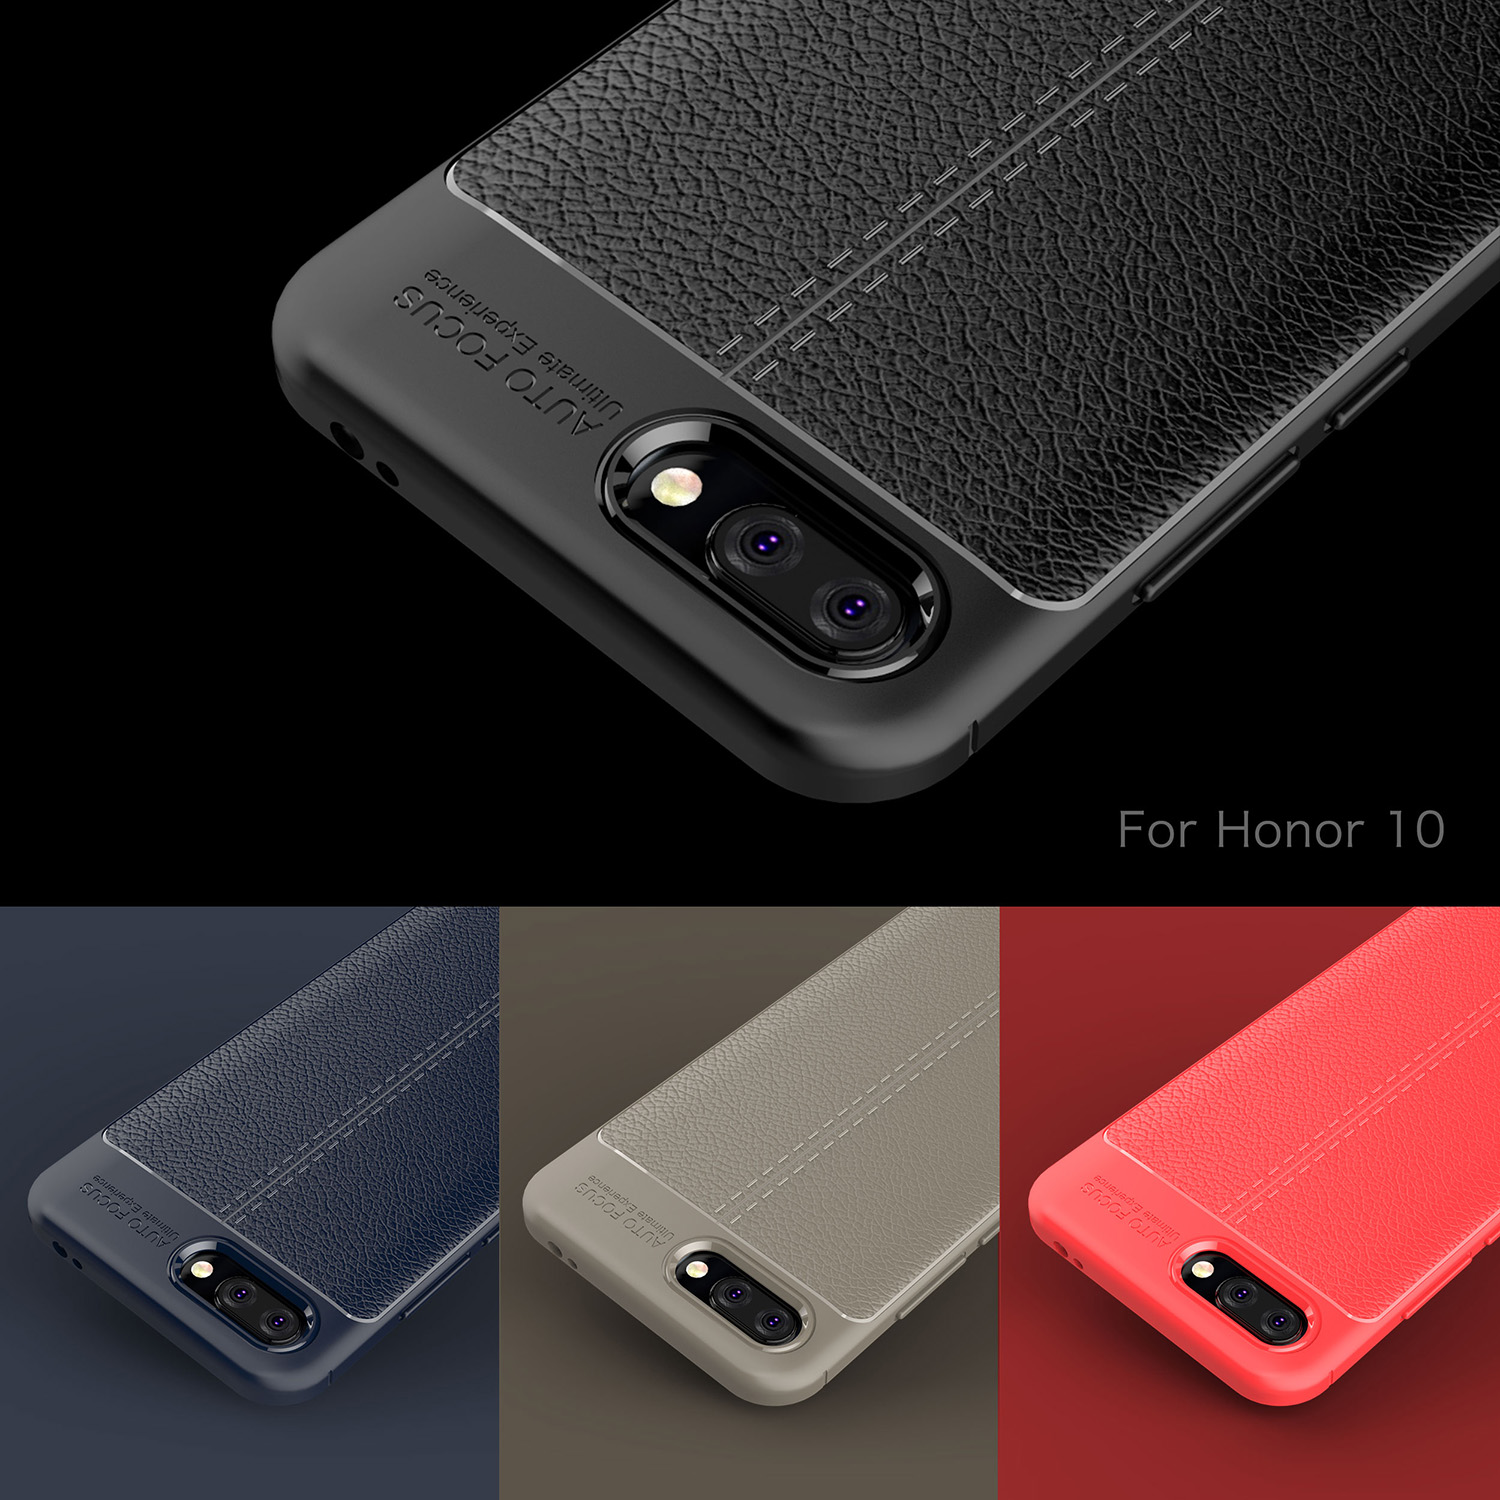 Honor 10 Soft TPU Case for Huawei Honor 10 Cover Leather Texture Silicon Phone Cover For Huawei Honor 10 Business Coque Wolfsay in Fitted Cases from Cellphones Telecommunications